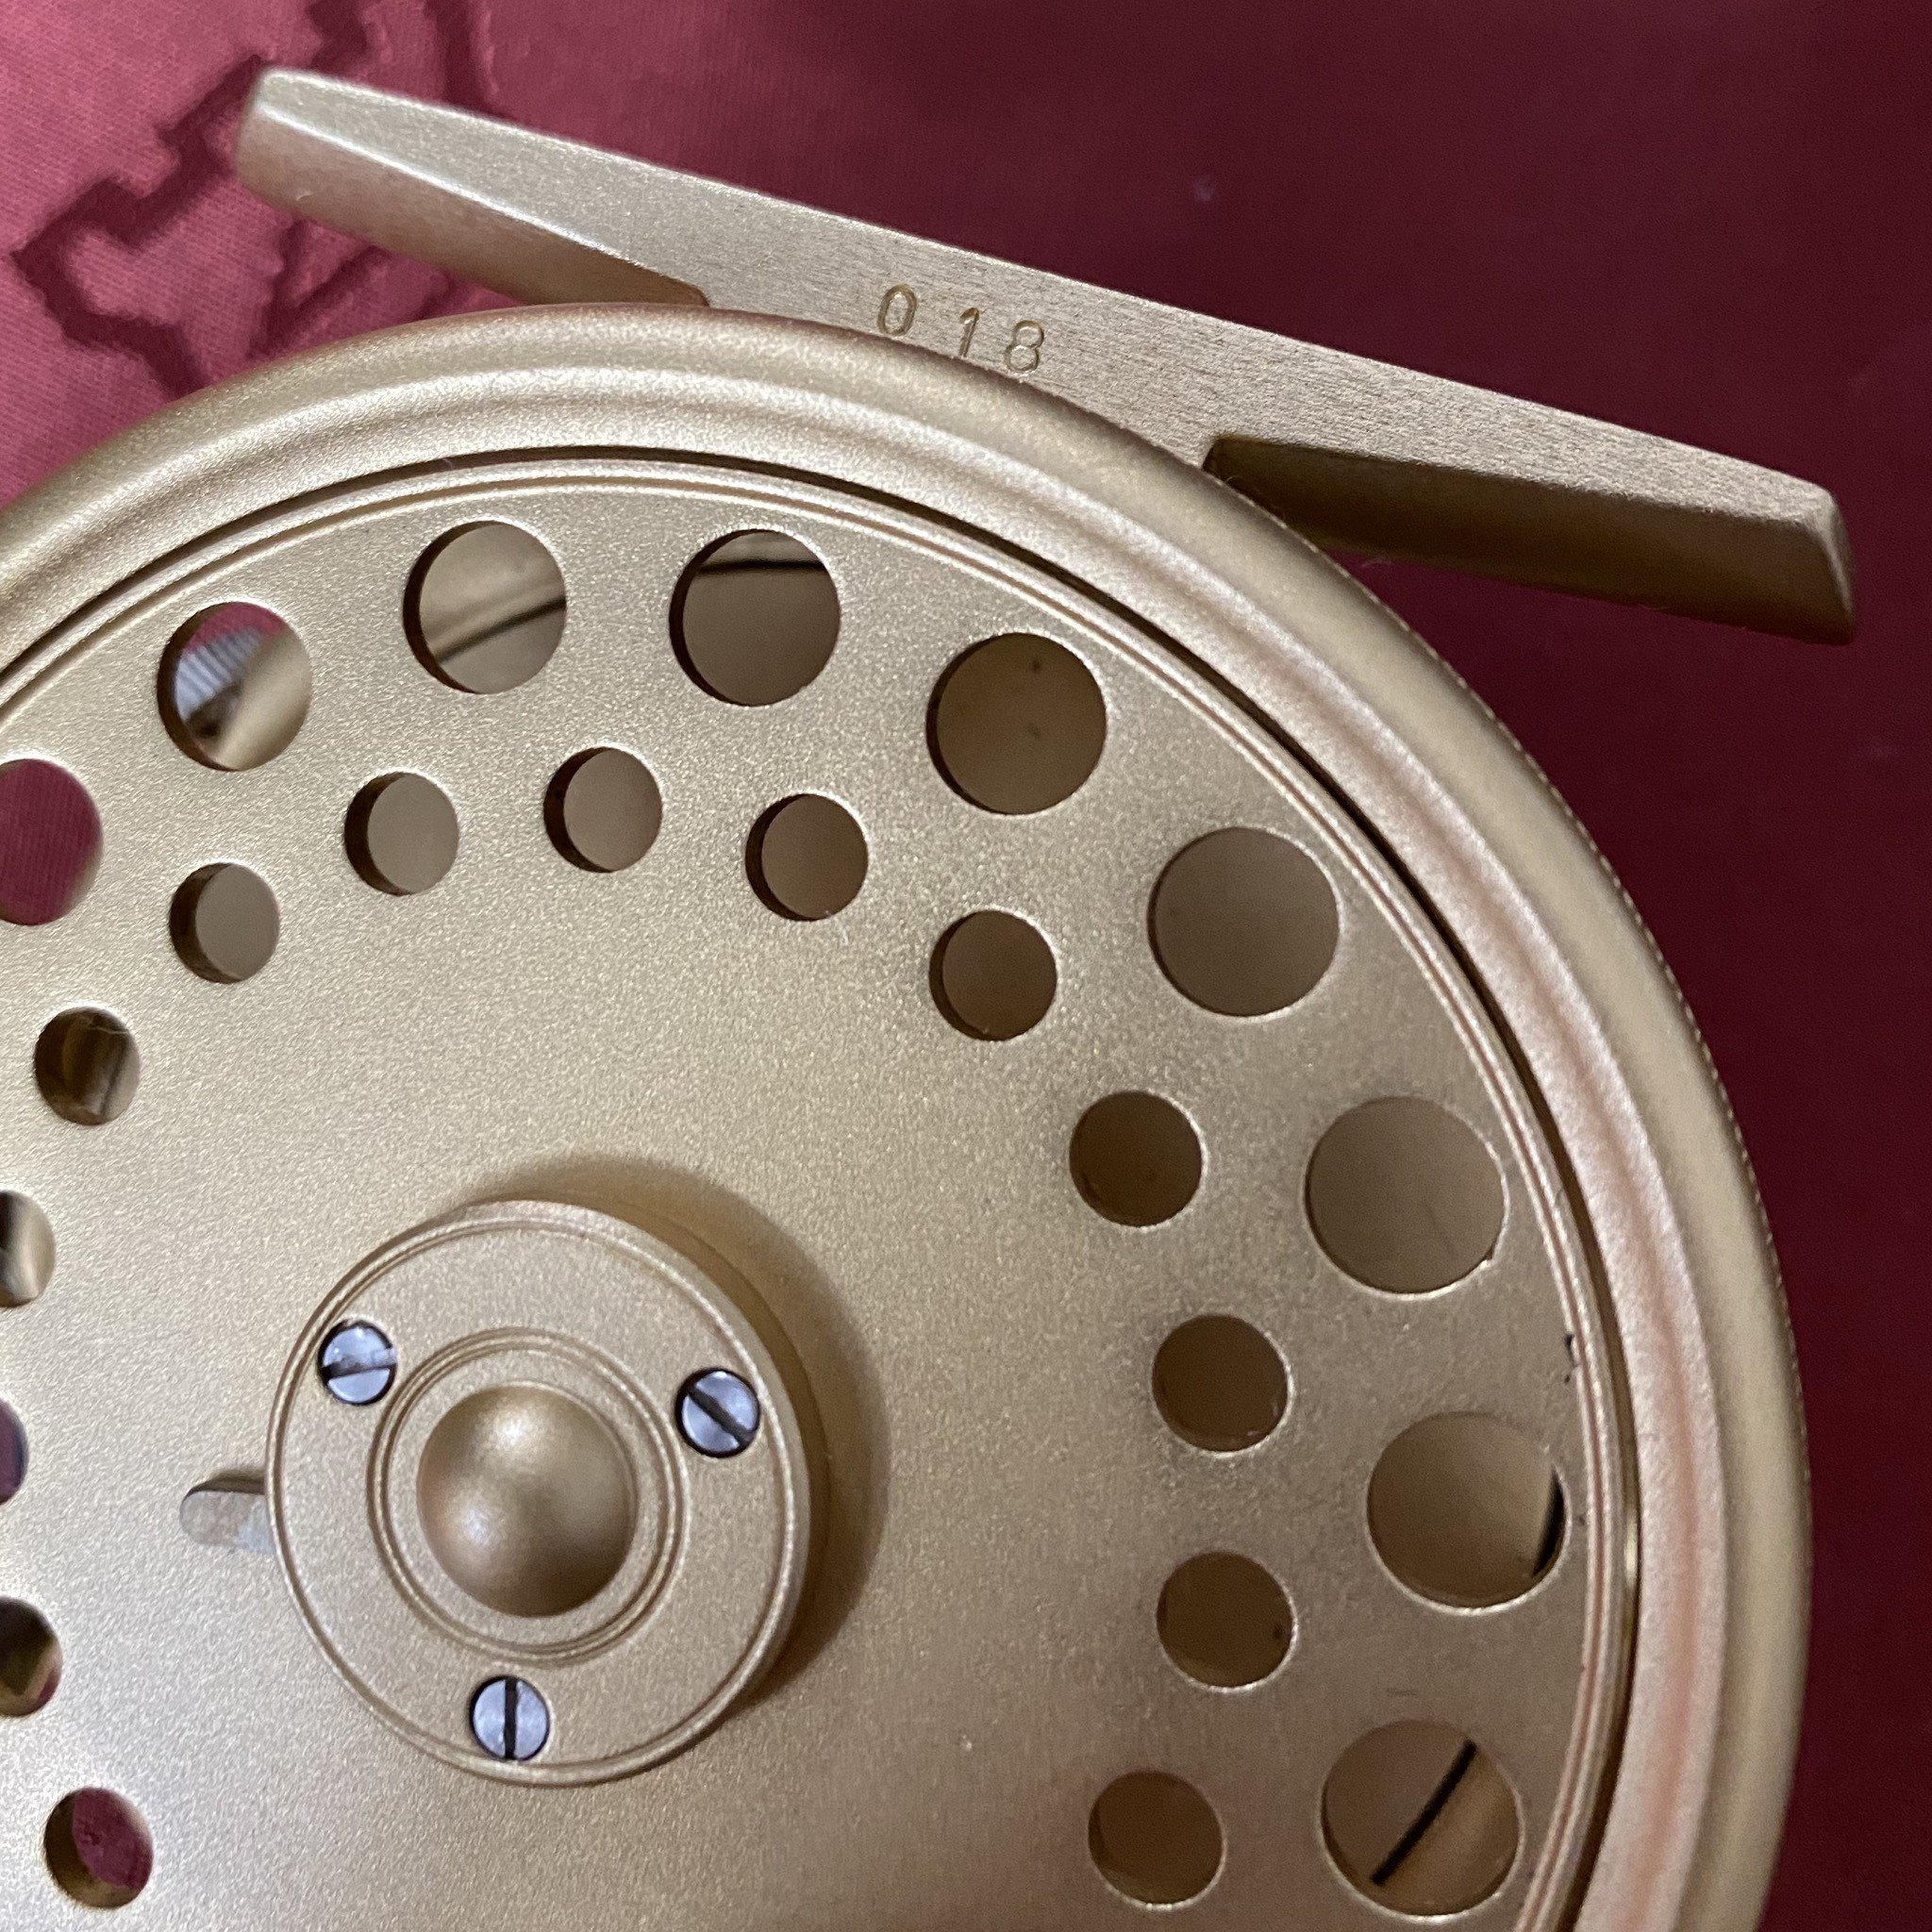 St. George The Royal Wedding Commemorative 3 inch Fly Reel MADE IN ENGLAND - LIMITED EDITION image 11